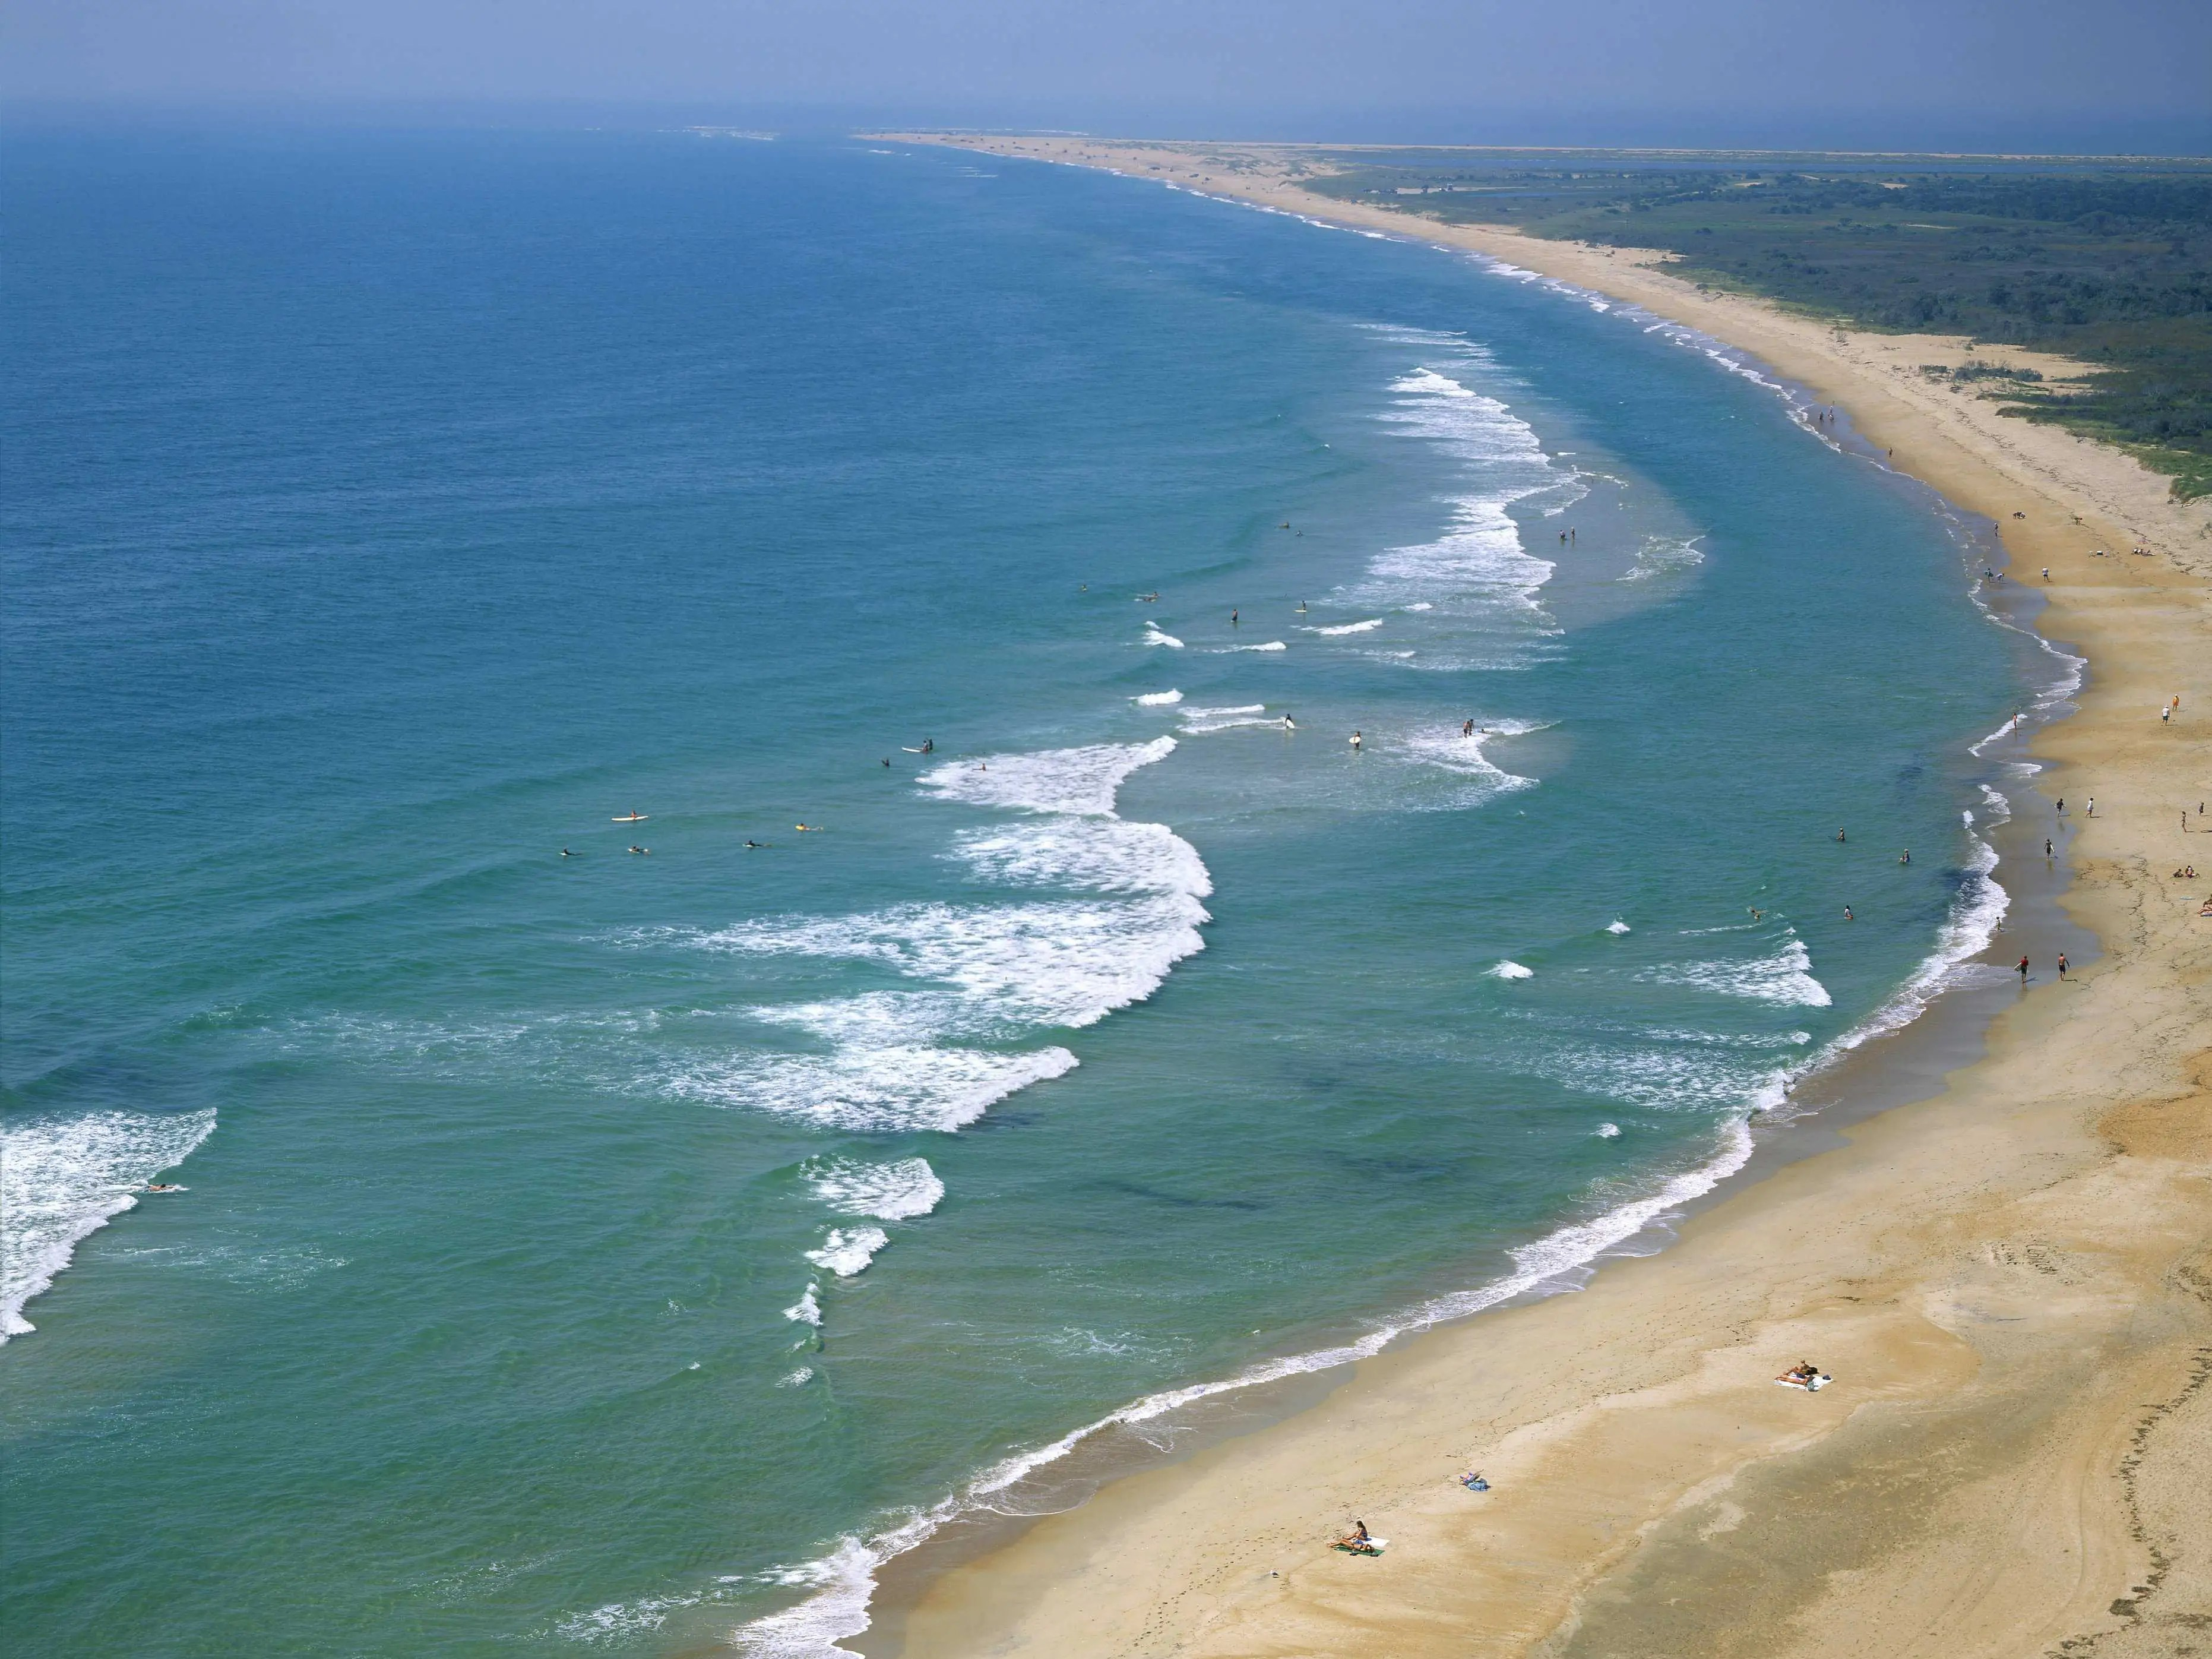 Protected as National Seashore, Cape Hatteras consists of miles of undeveloped shoreline along the Outer Banks of North Carolina. Once the stomping grounds of pirates, it's now popular among surfers, birdwatchers, and anyone looking for an easygoing place to relax.